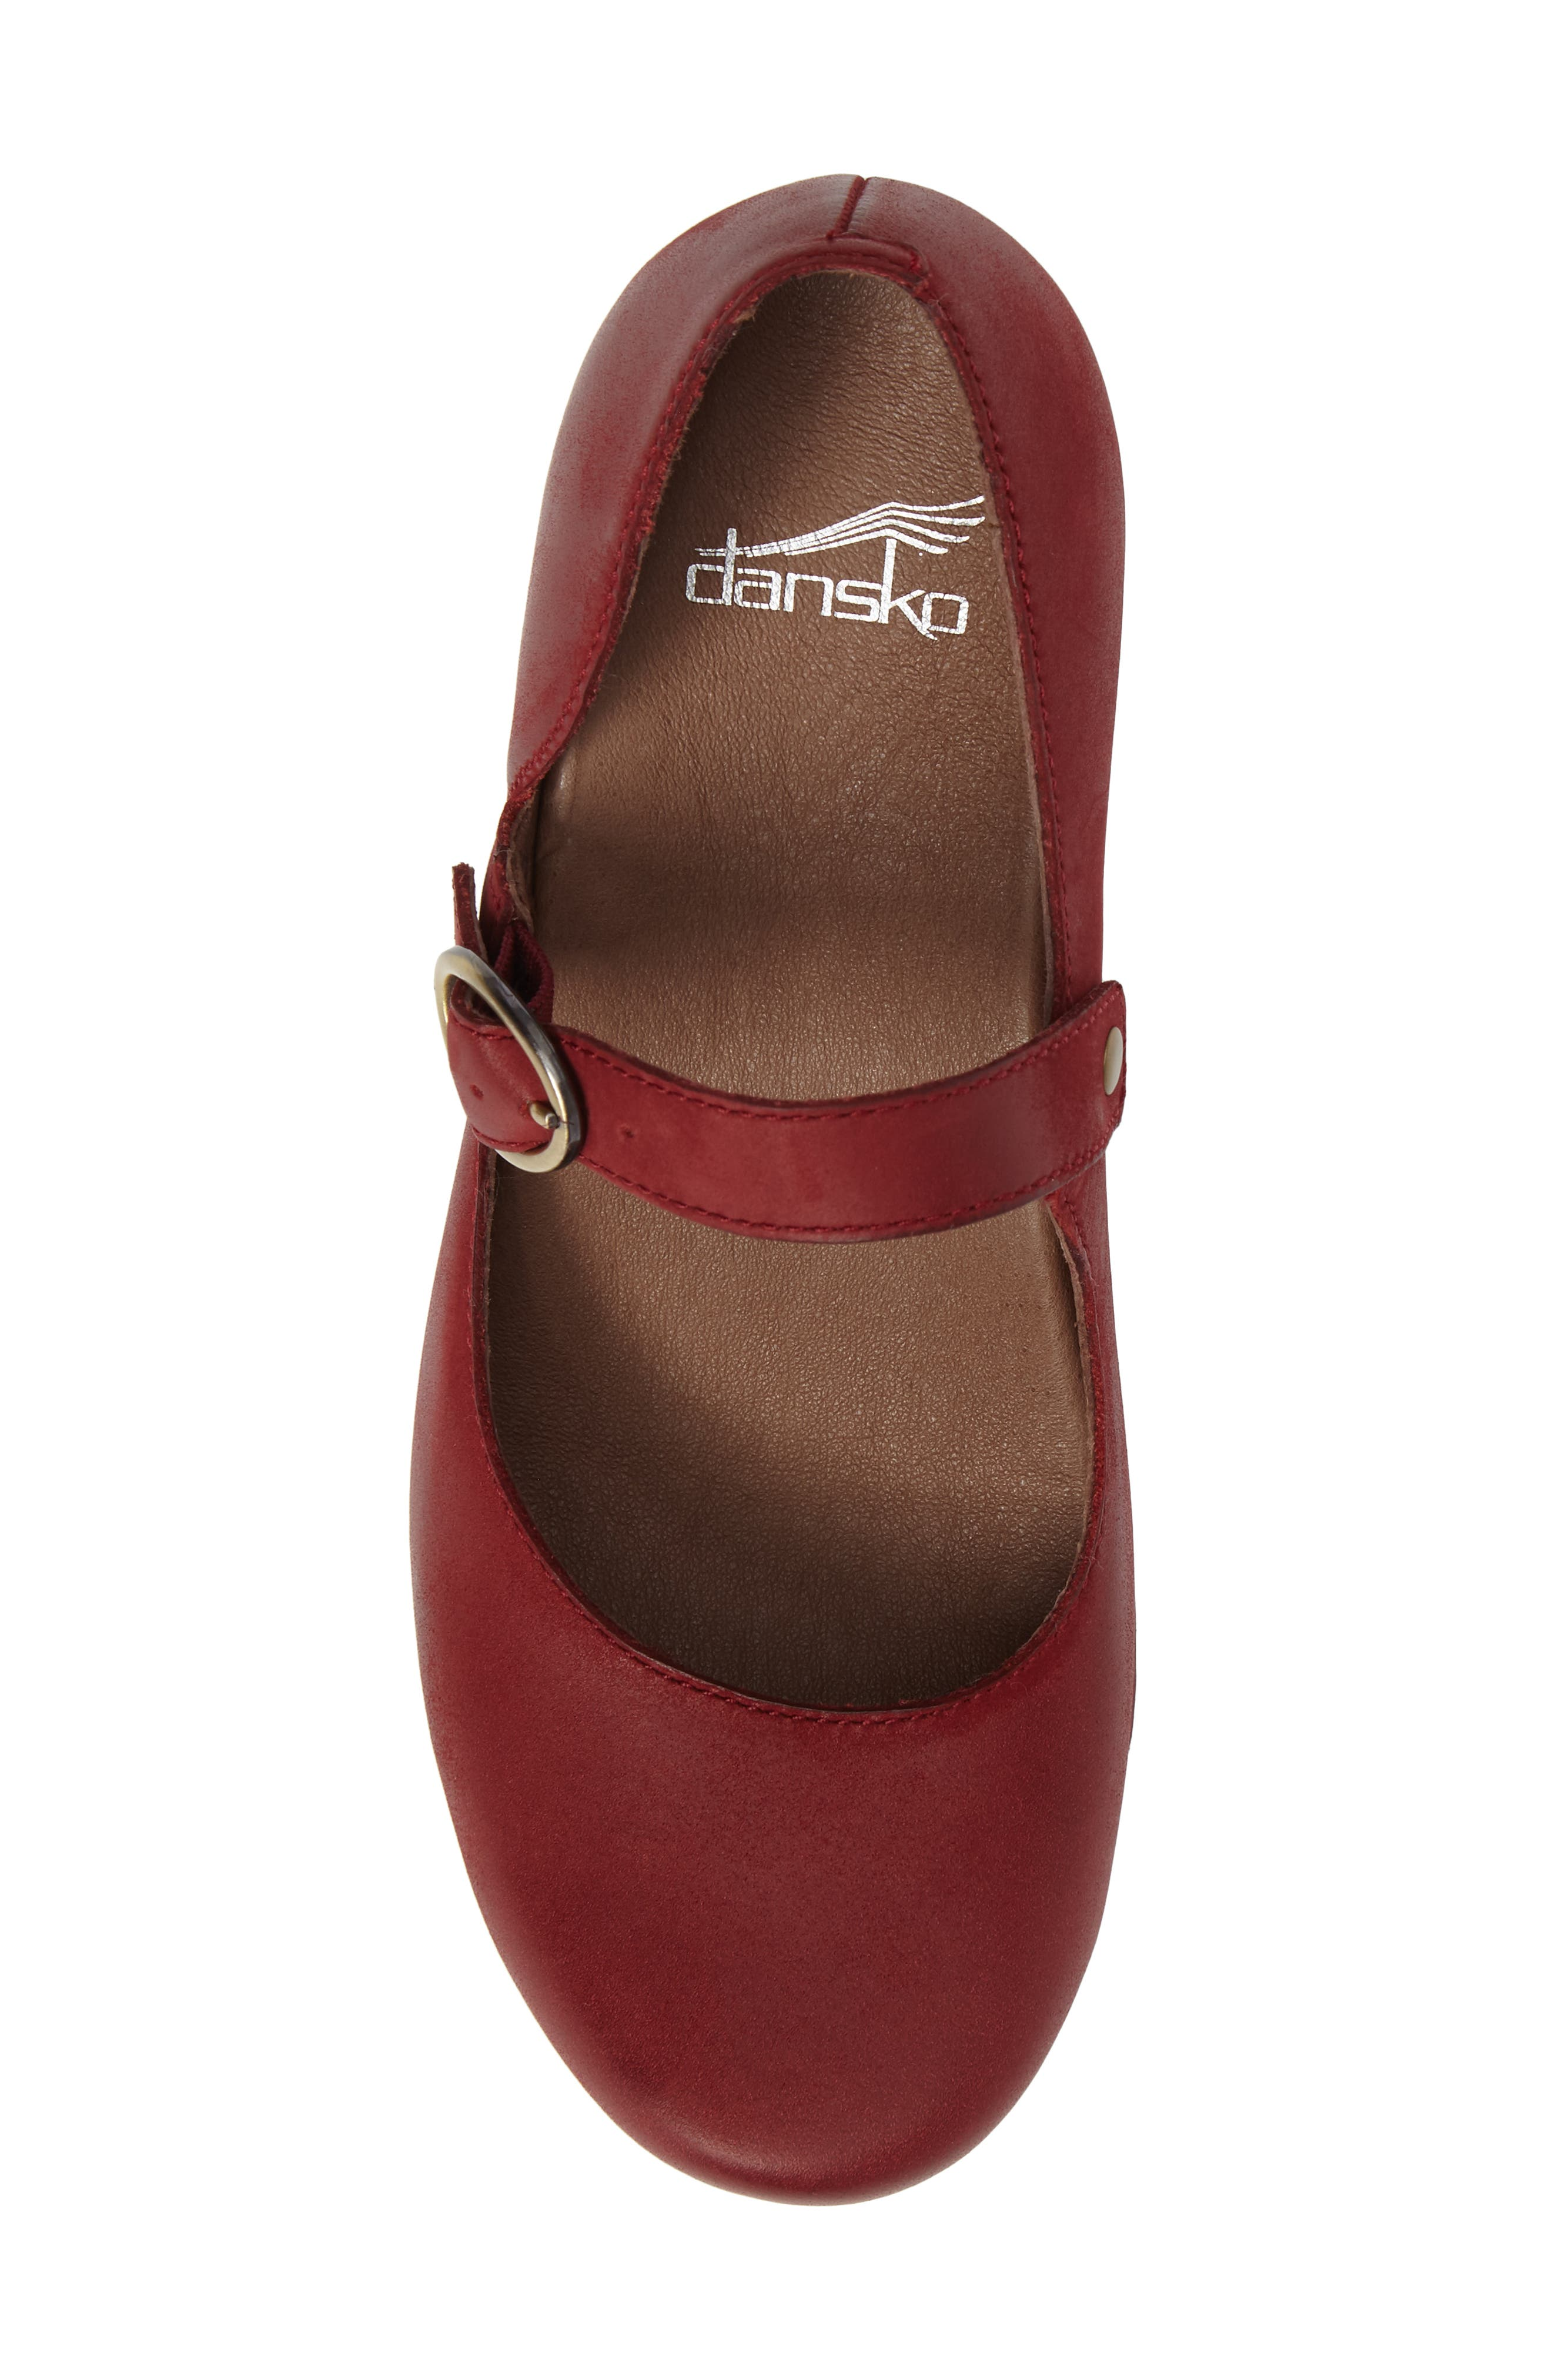 Missy Mary Jane Pump,                             Alternate thumbnail 5, color,                             Red Leather